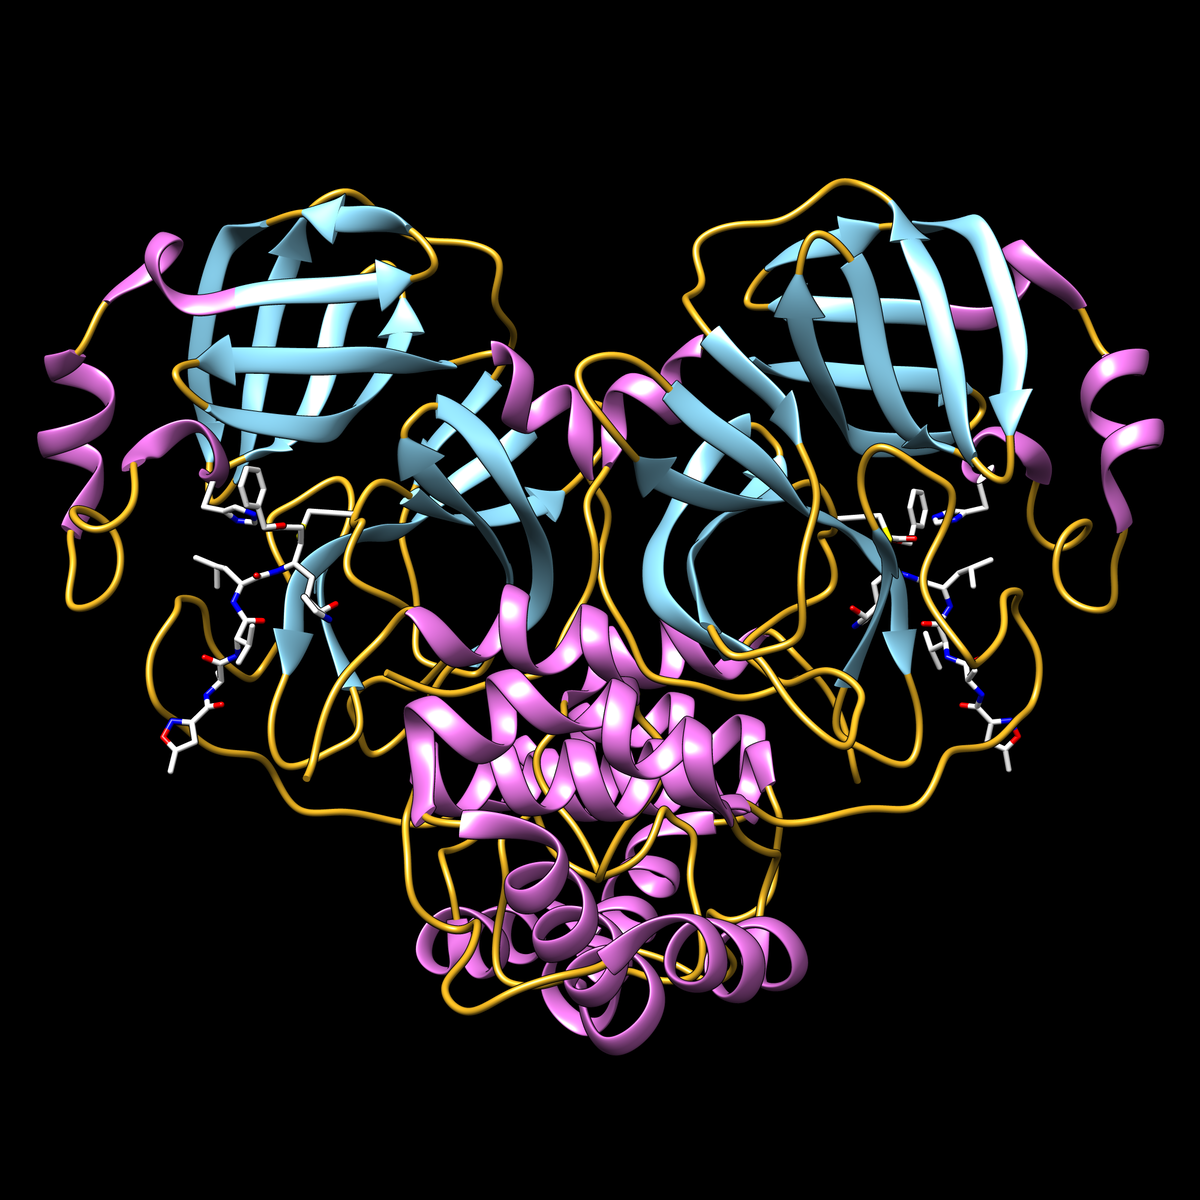 COVID-19 main protease protein with inhibitor N3 (white stick representation) covalently bound to residue cysteine 145 in the protease active site. Display shows secondary structure (helices in magenta, strands in cyan, loops in yellow). Adjacent active site residue histidine 41 is also shown.